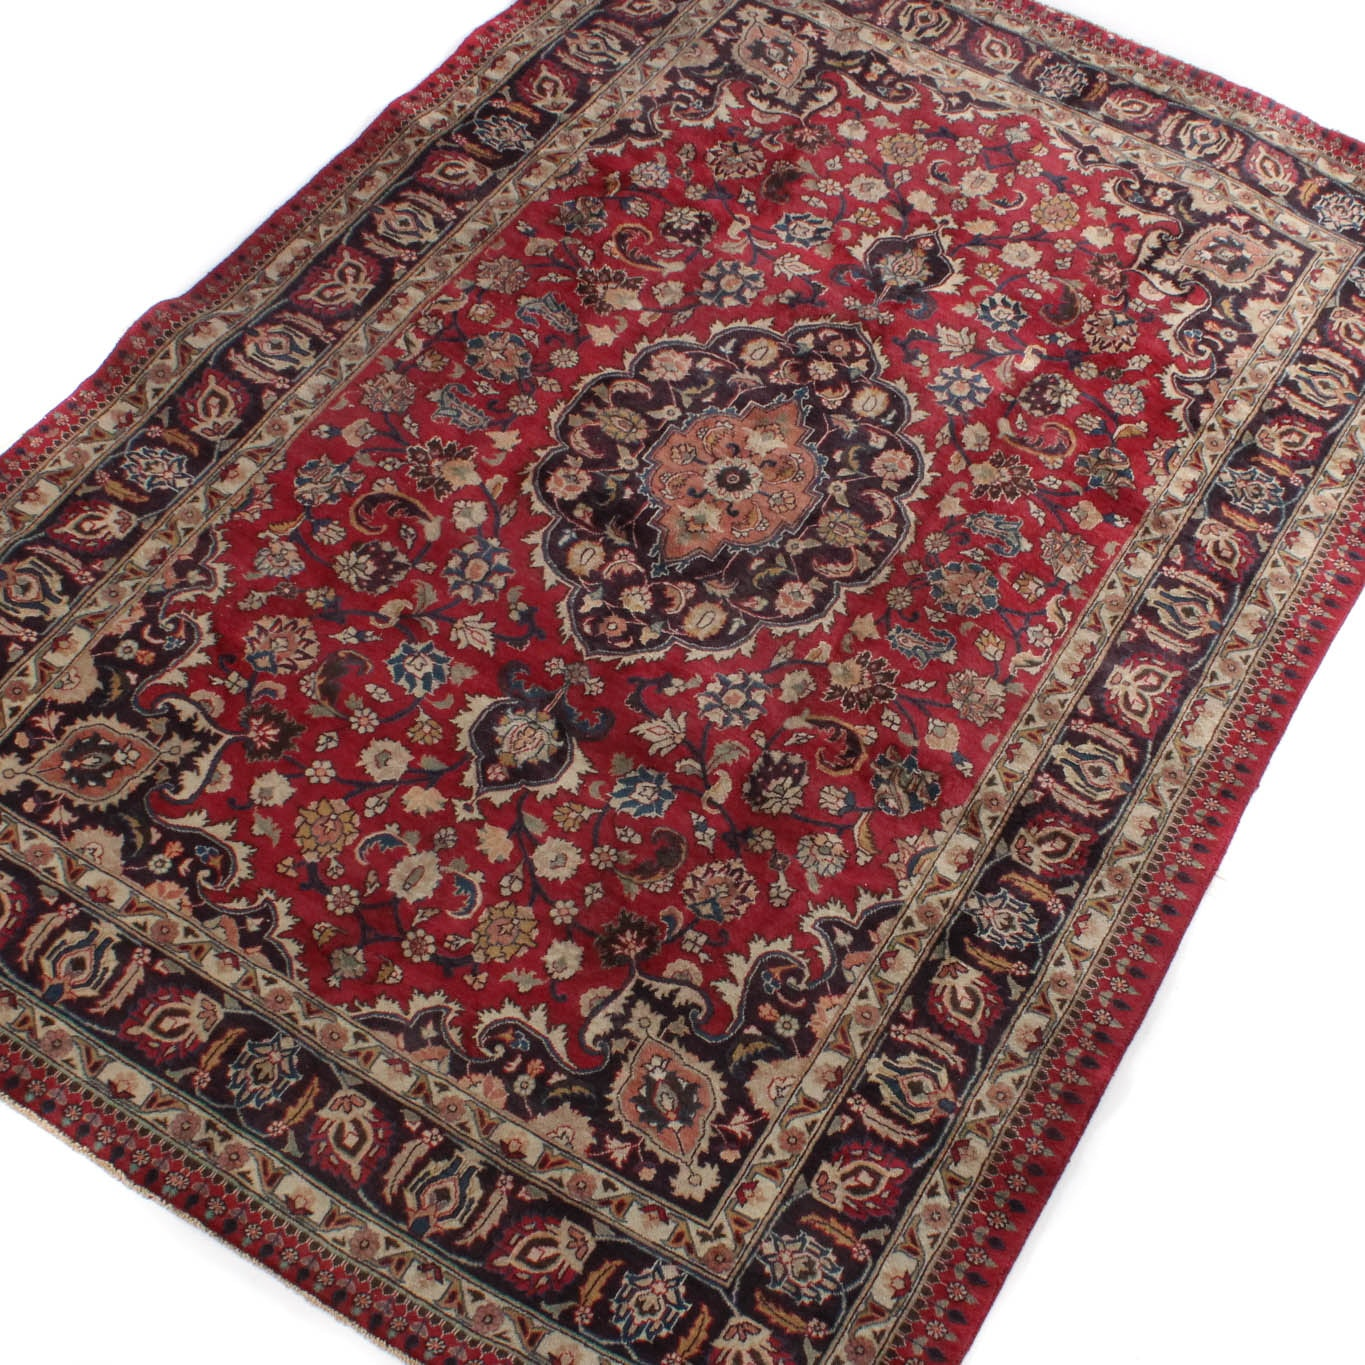 Vintage Hand-Knotted Persian Qom Wool Area Rug